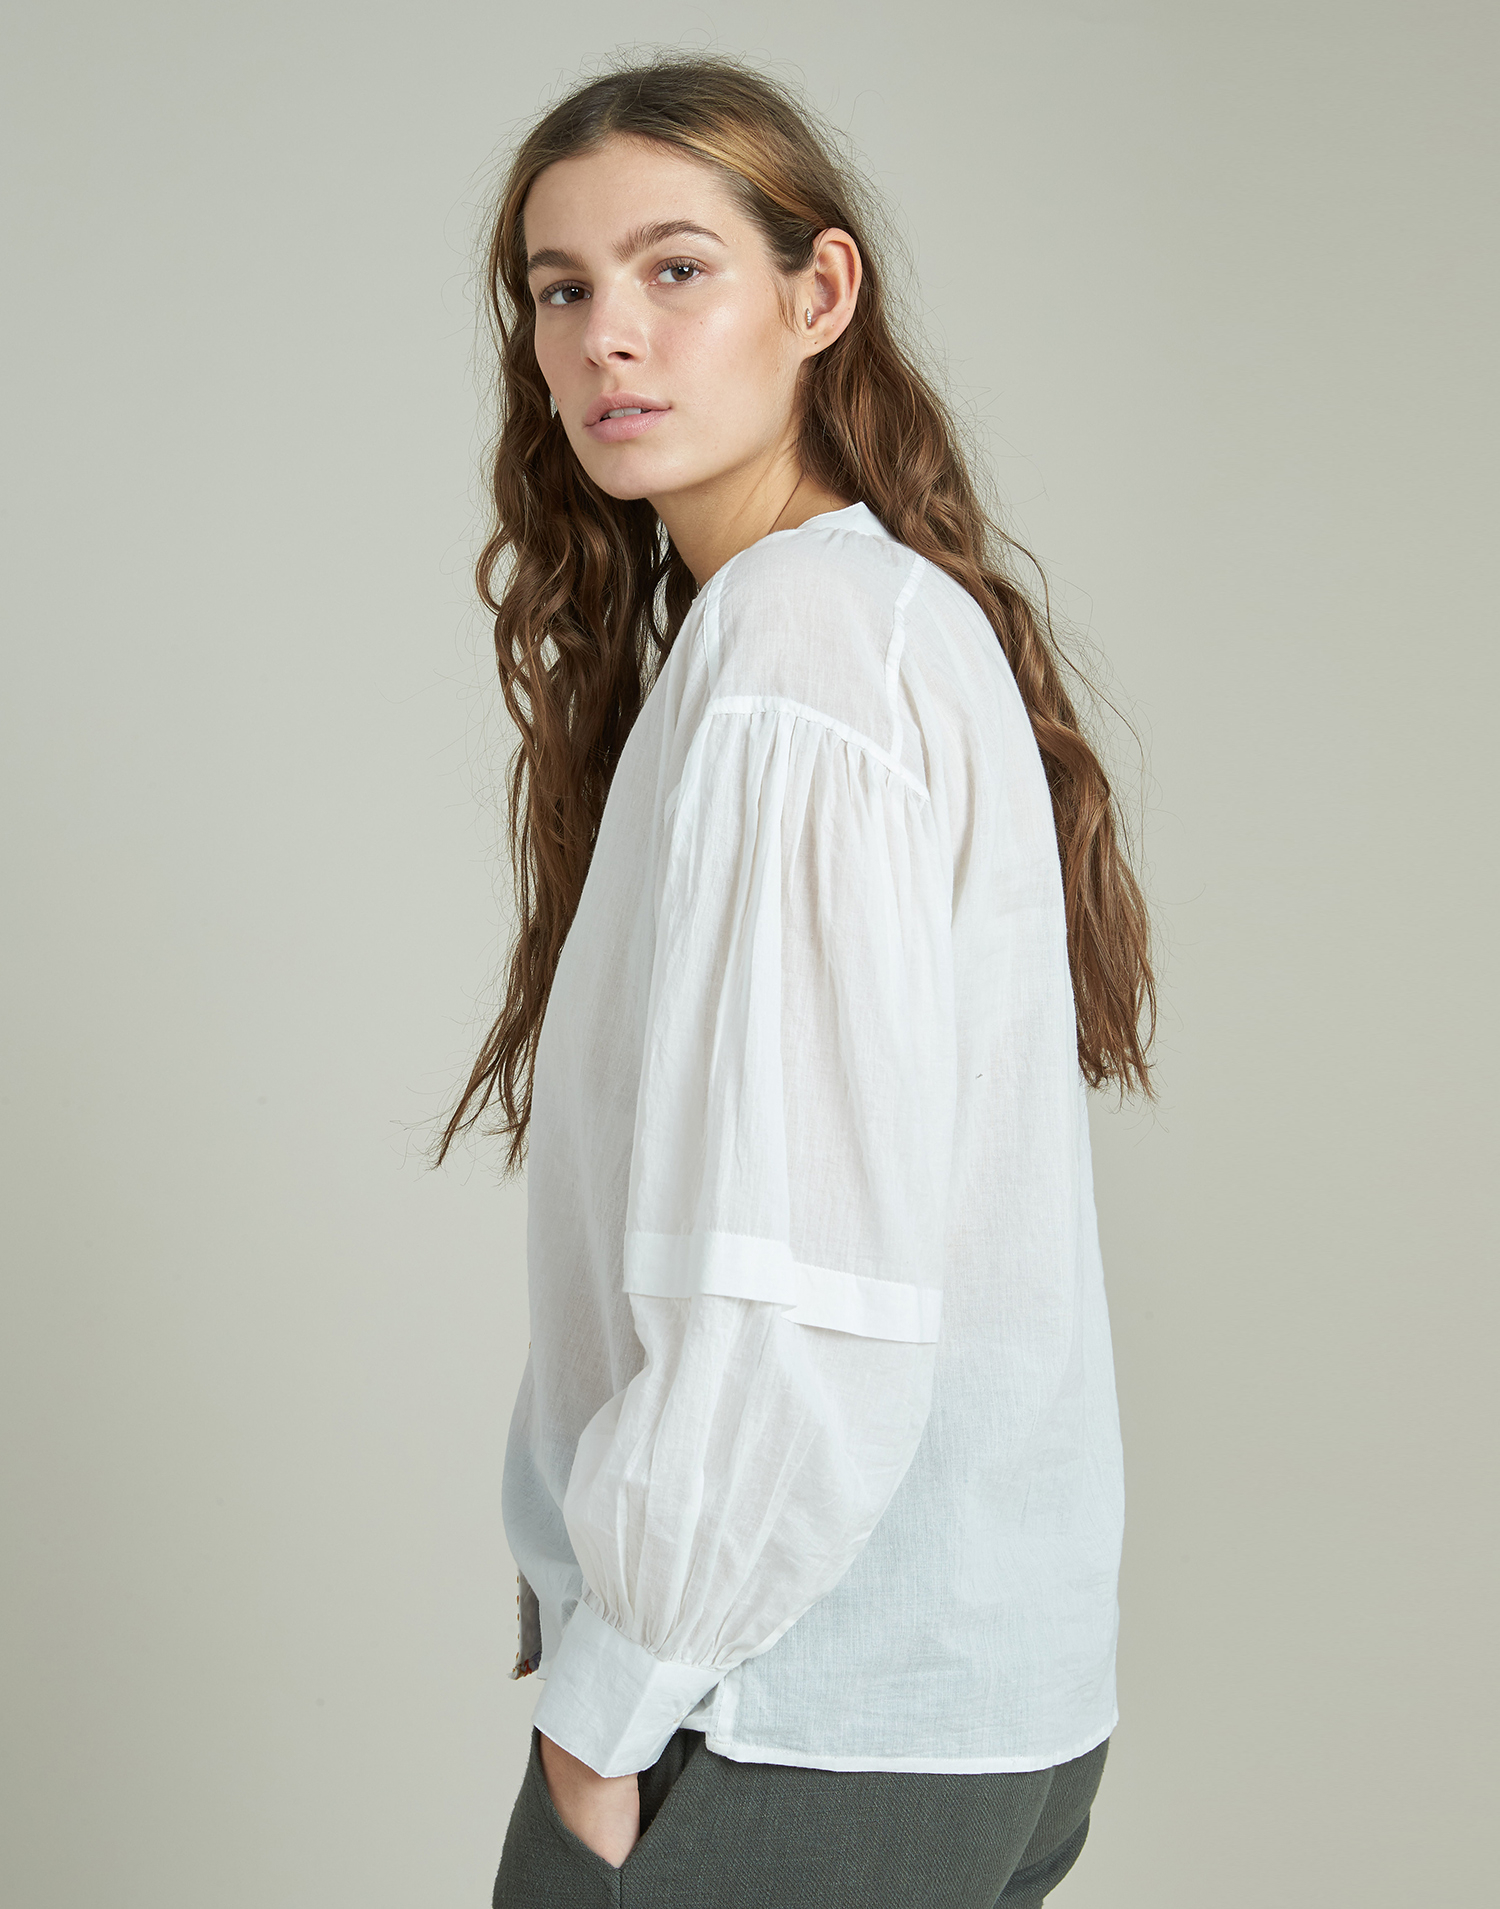 Long sleeve shirt with embroidered placket